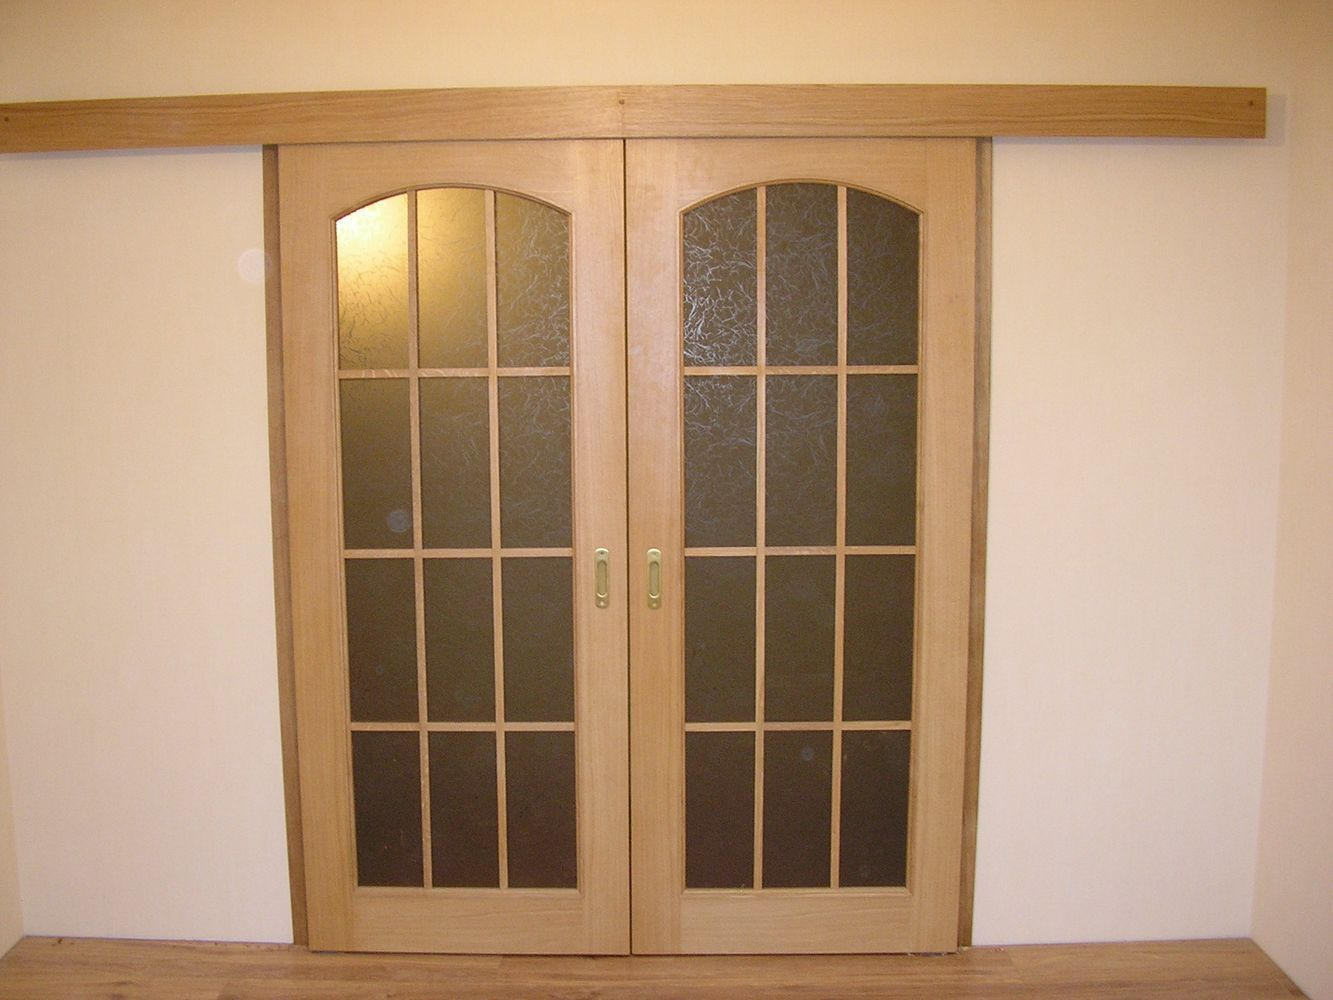 Sliding veneered interior doors